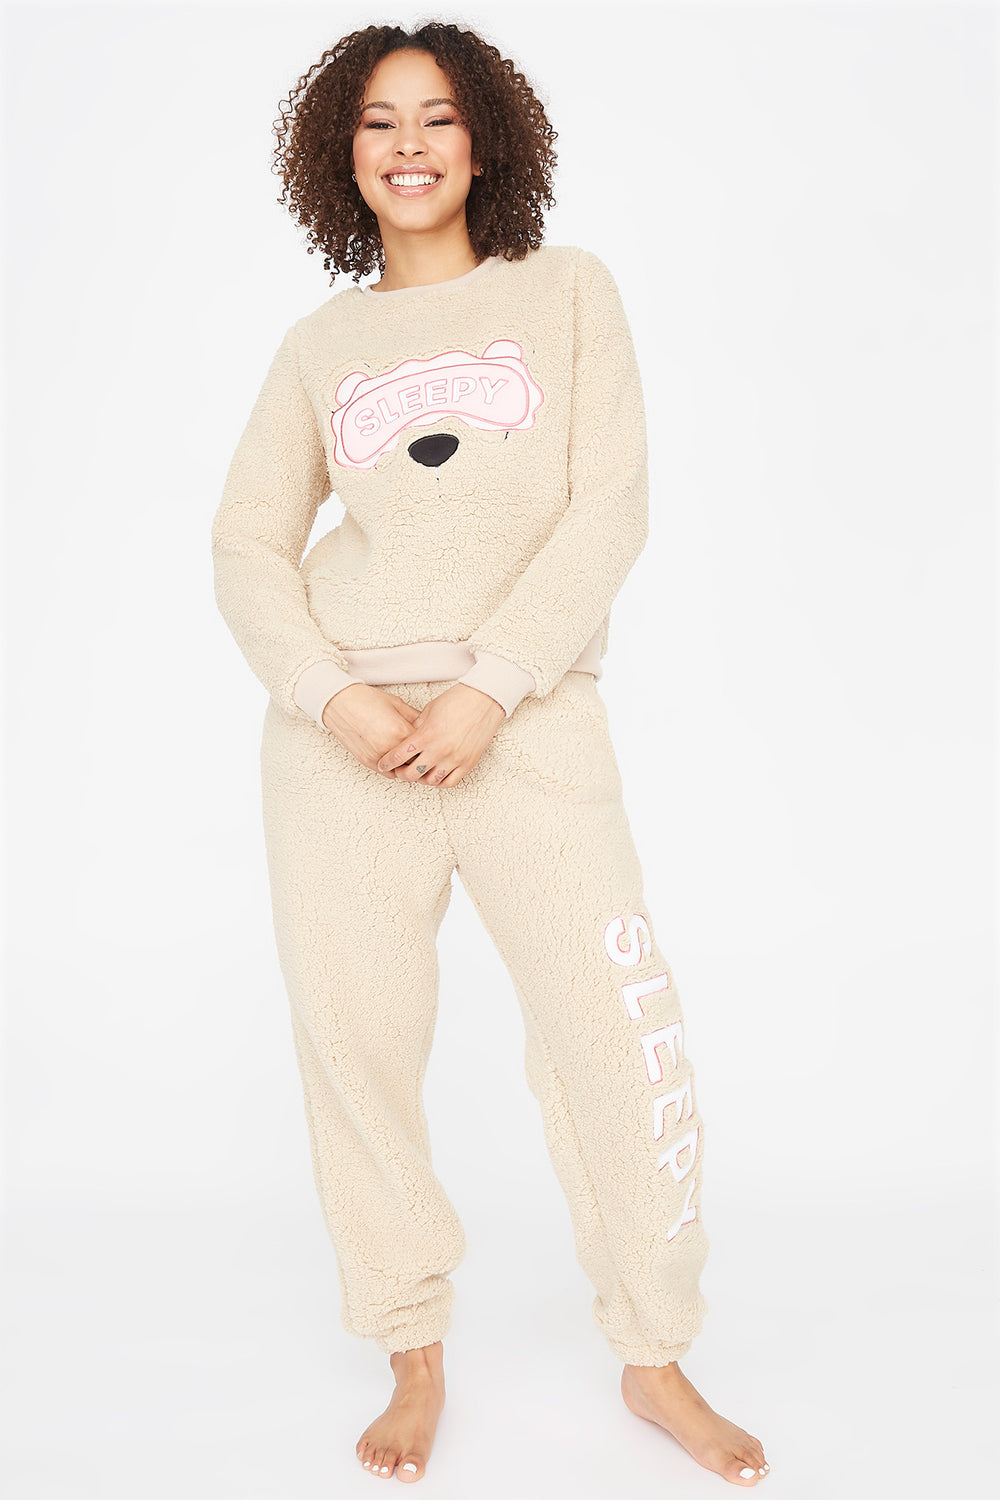 Sherpa Graphic Sleepy Pajama Sweatshirt Beige